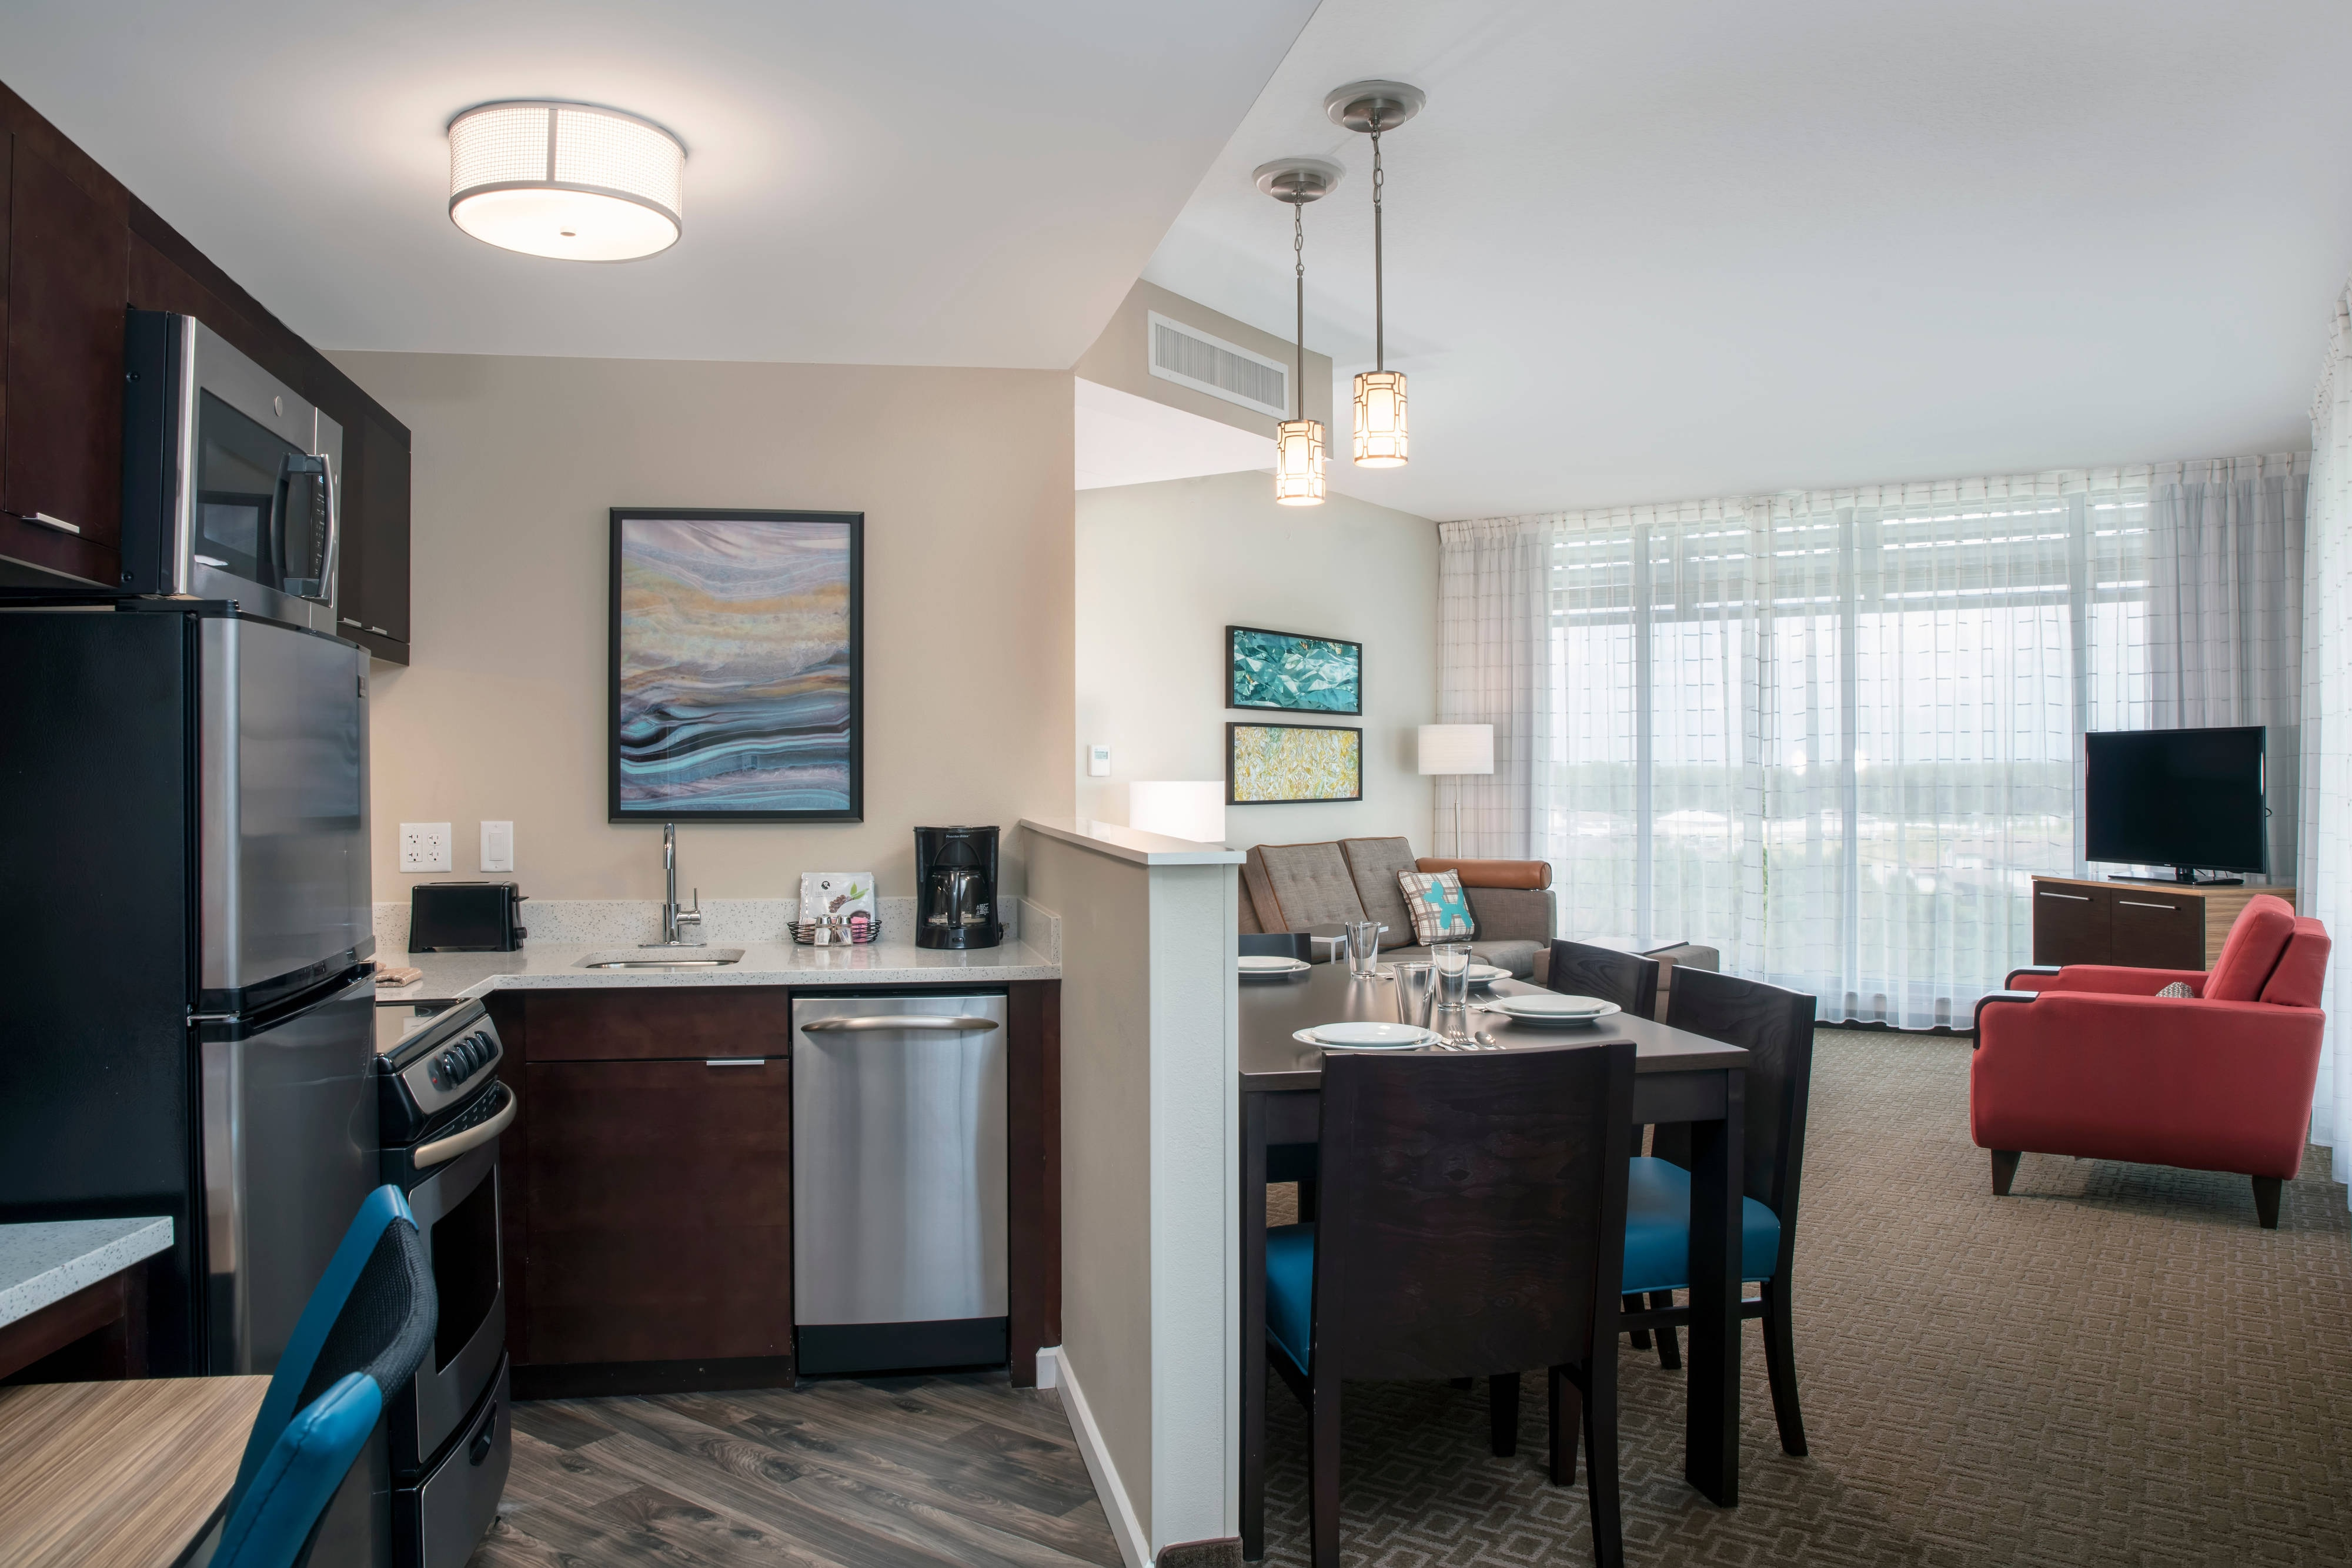 Hotels in lake buena vista fl towneplace suites orlando - Cheap 2 bedroom suites in orlando ...